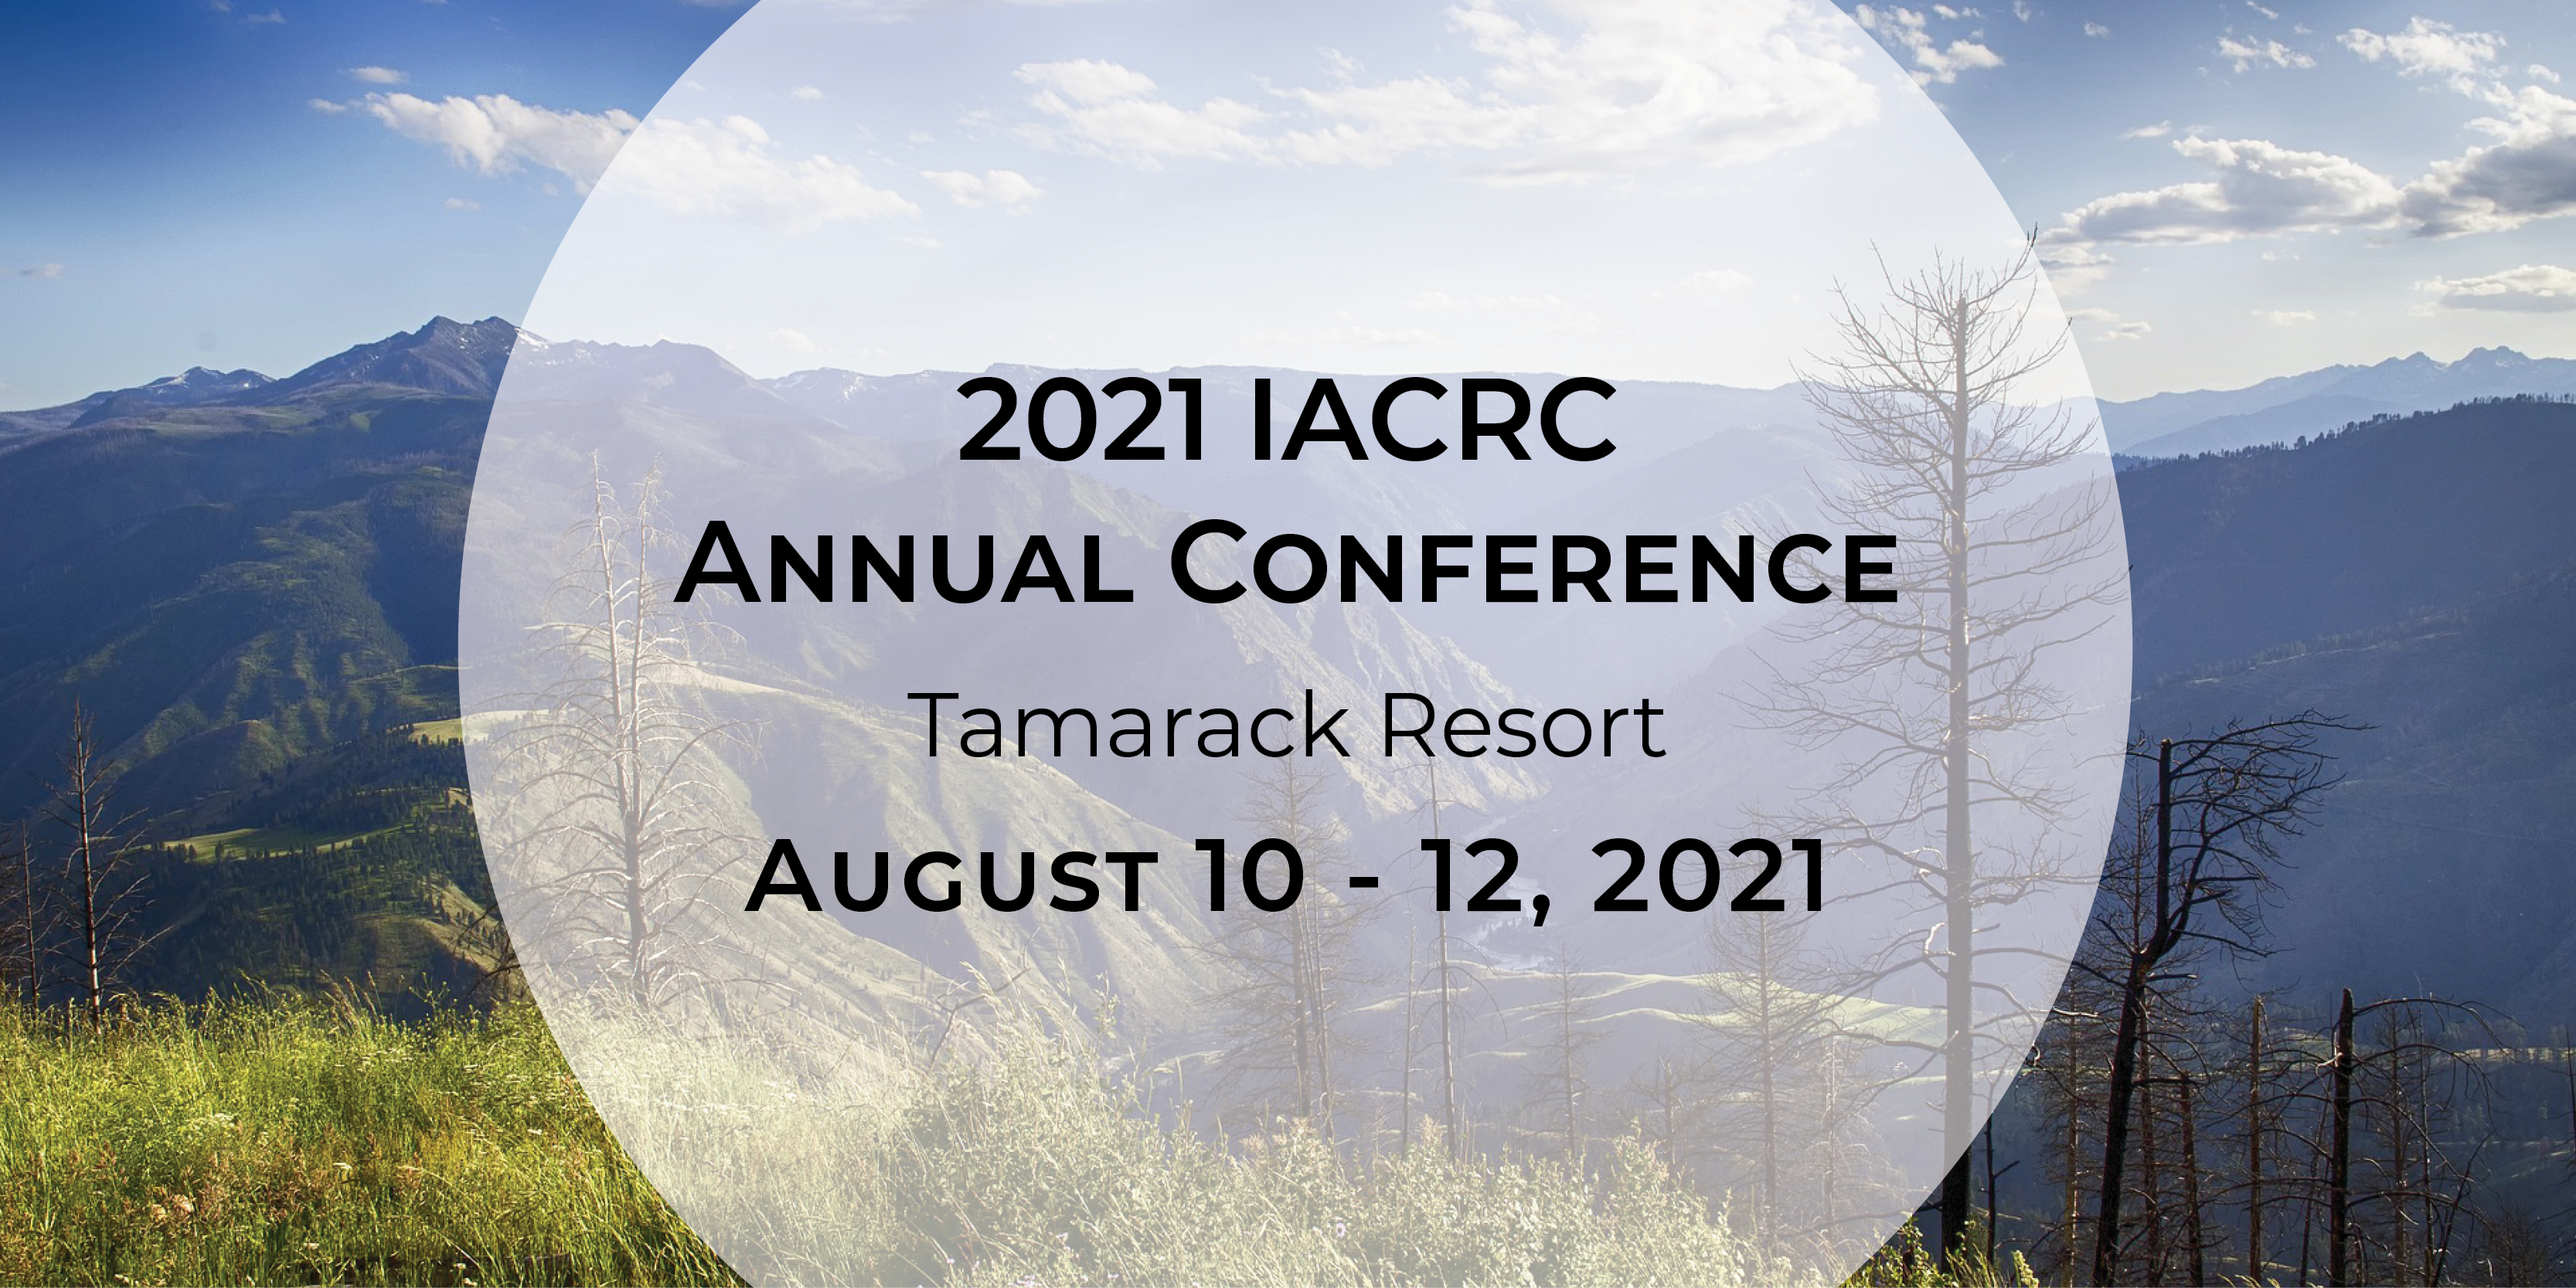 2021 IACRC Annual Conference